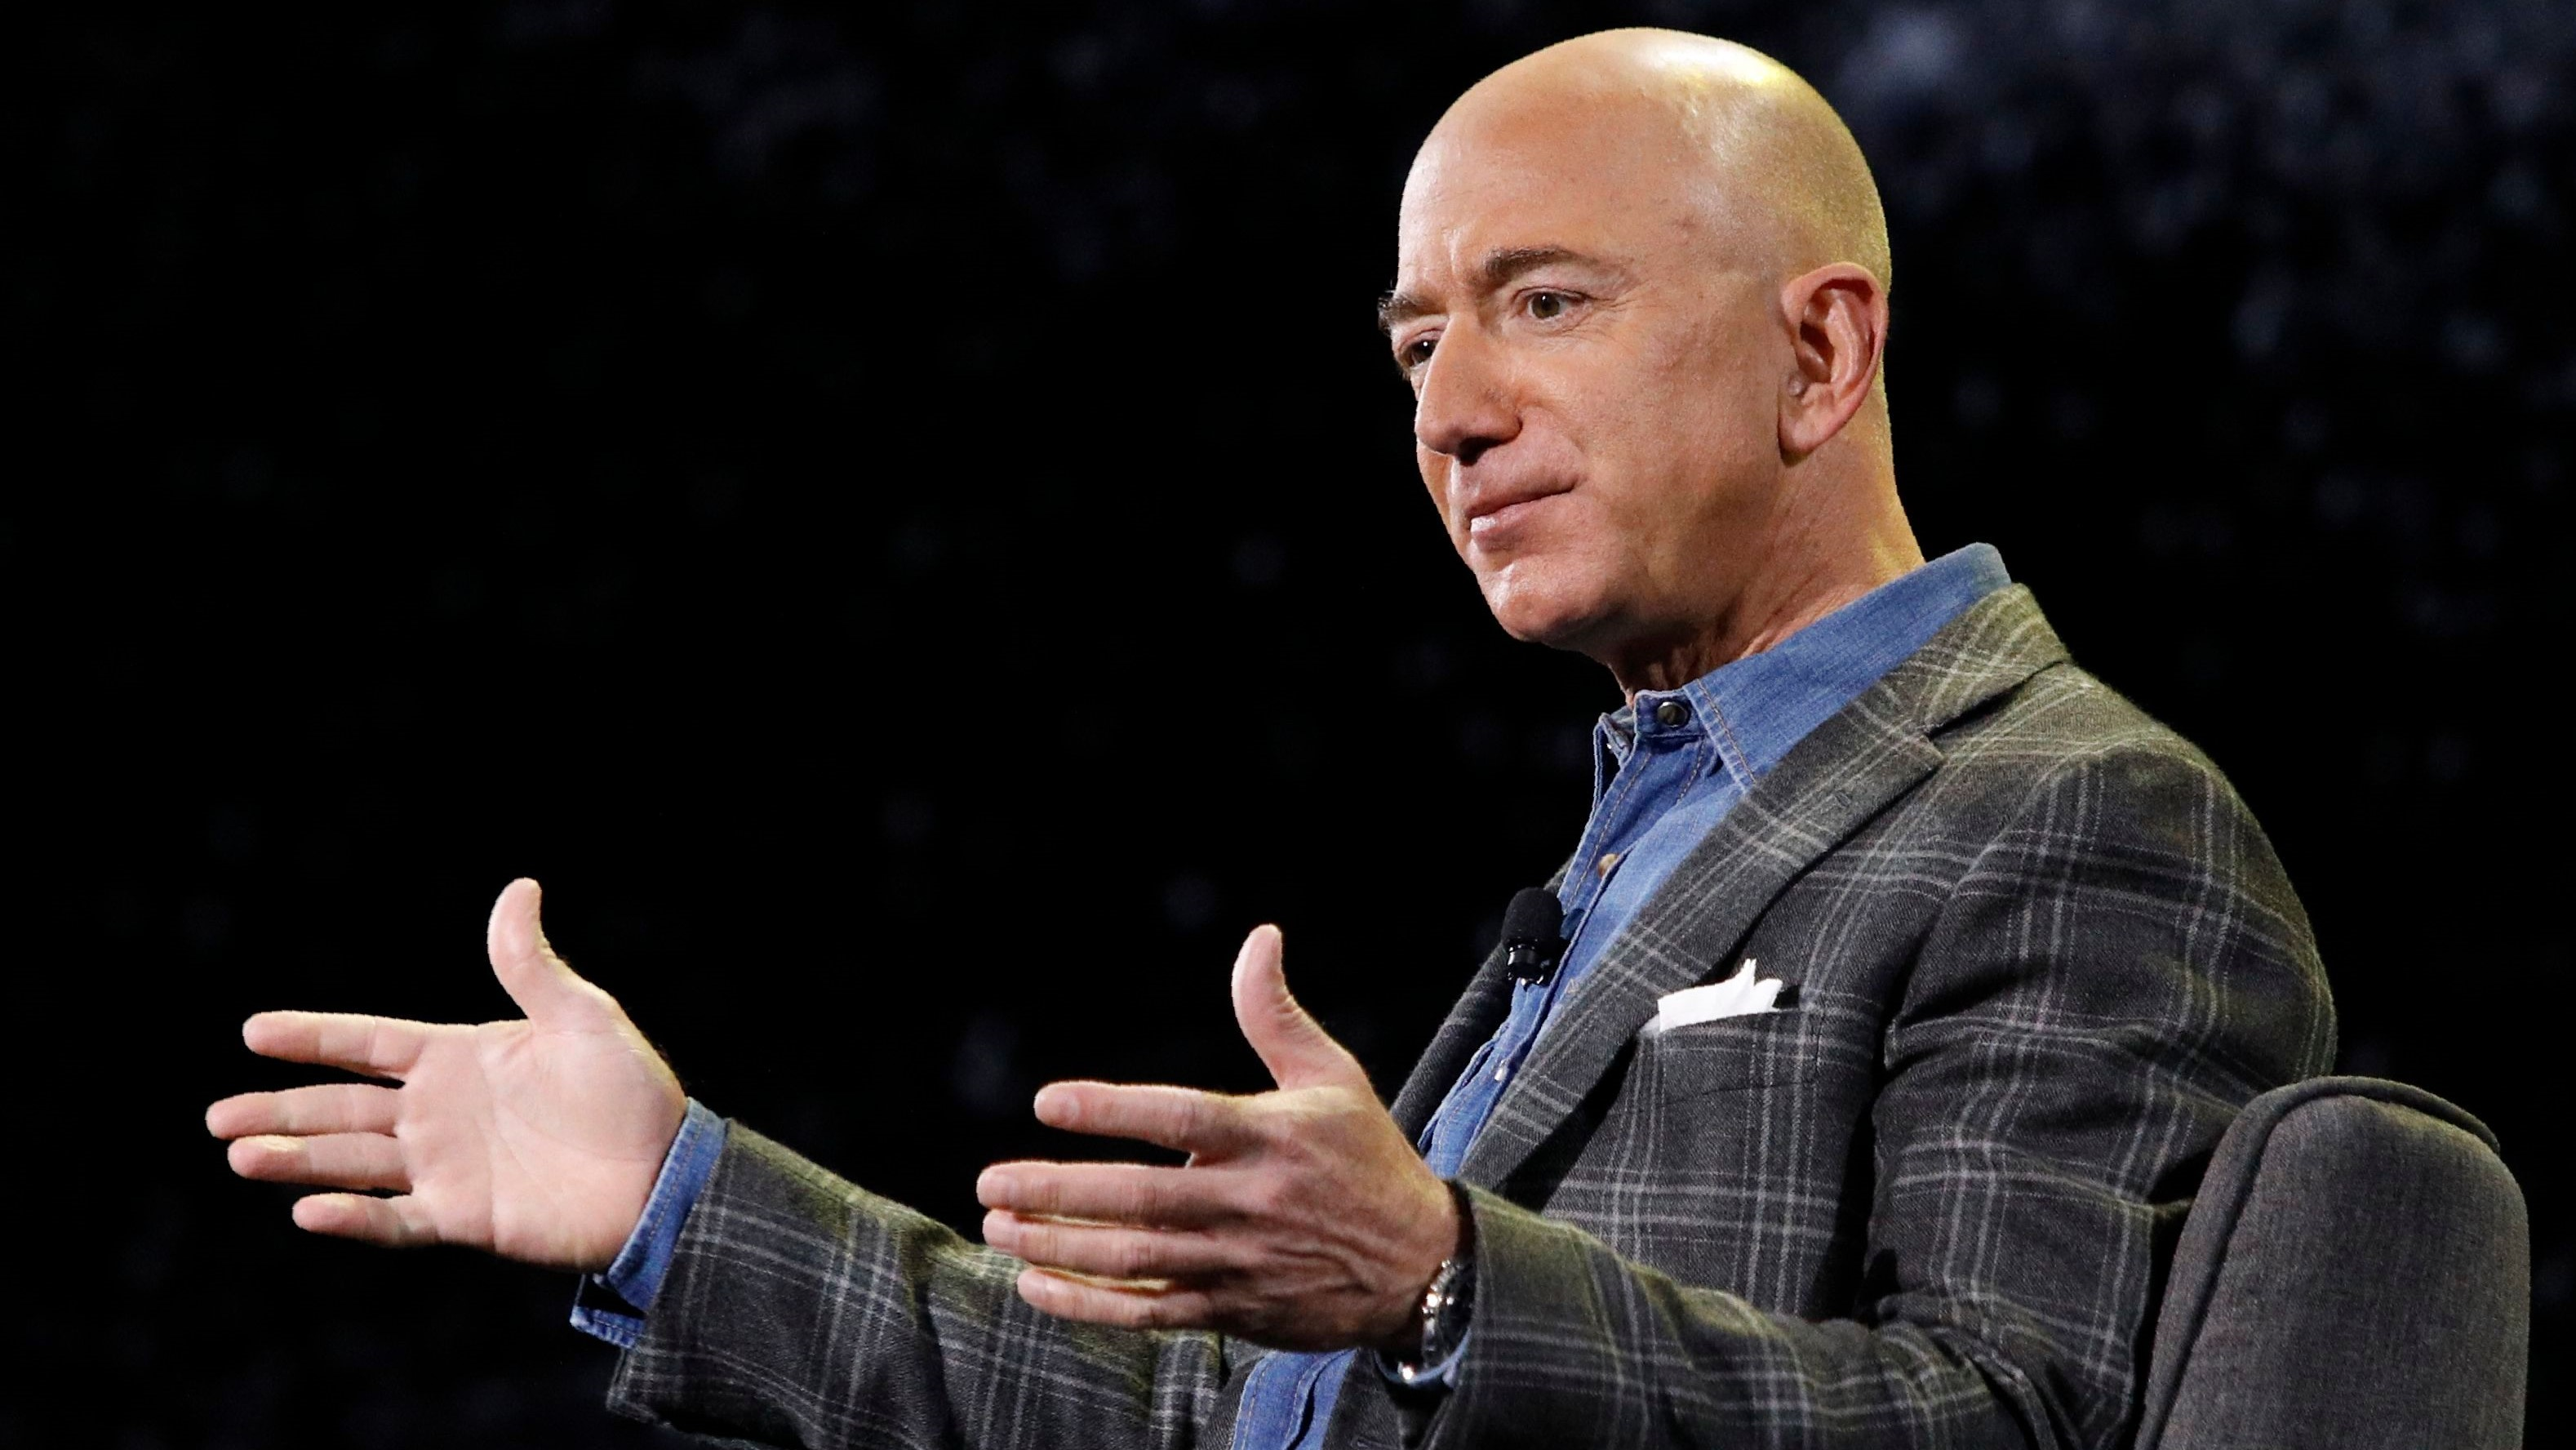 Mandatory Credit: Photo by John Locher/AP/Shutterstock (10286603a)Amazon CEO Jeff Bezos speaks at the the Amazon re:MARS convention, in Las VegasAmazon Bezos, Las Vegas, USA - 06 Jun 2019.